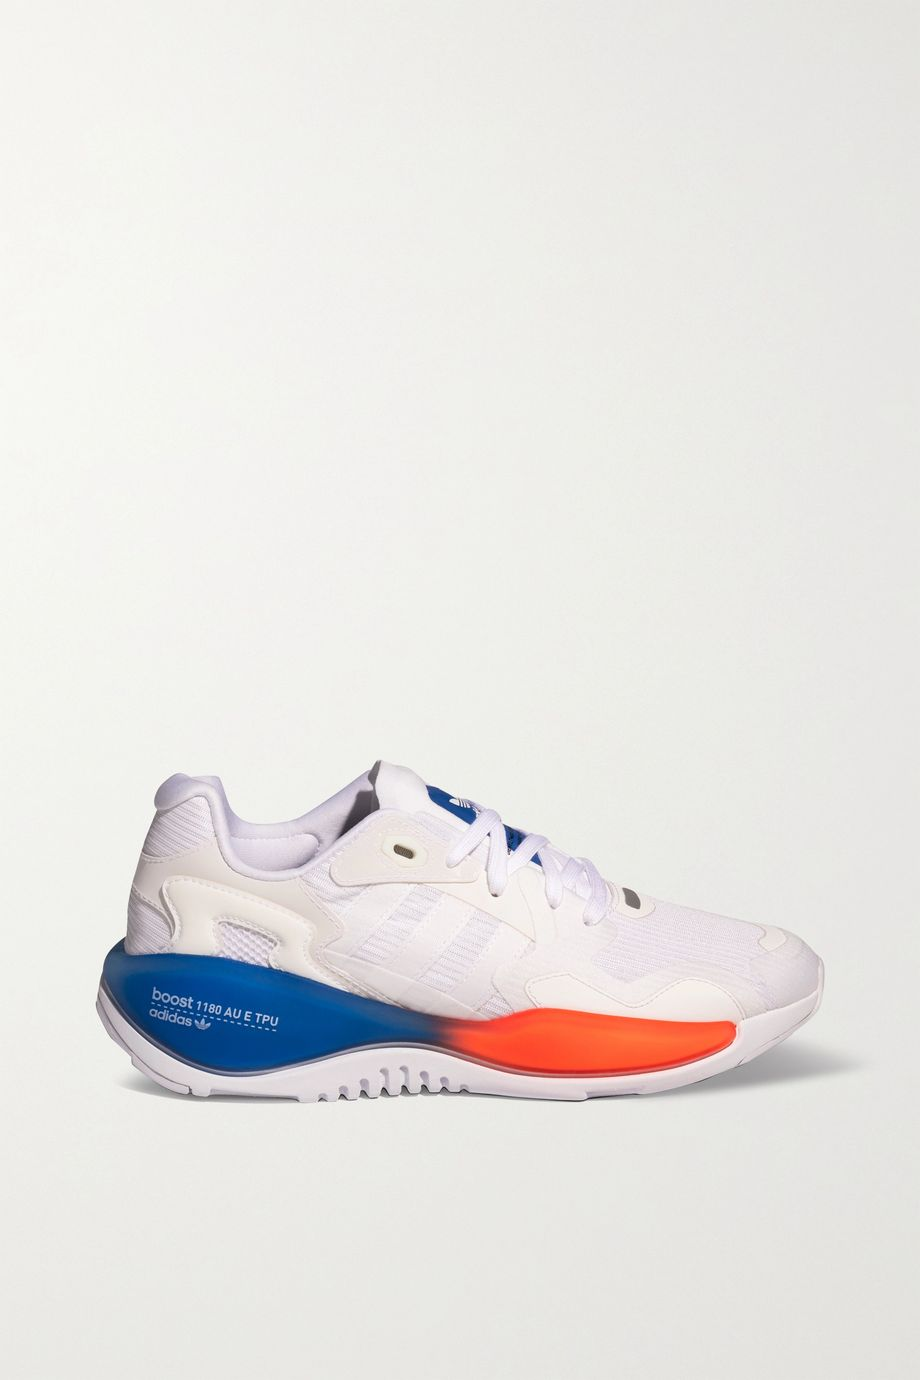 adidas Originals ZX Alkyne 皮革网眼运动鞋